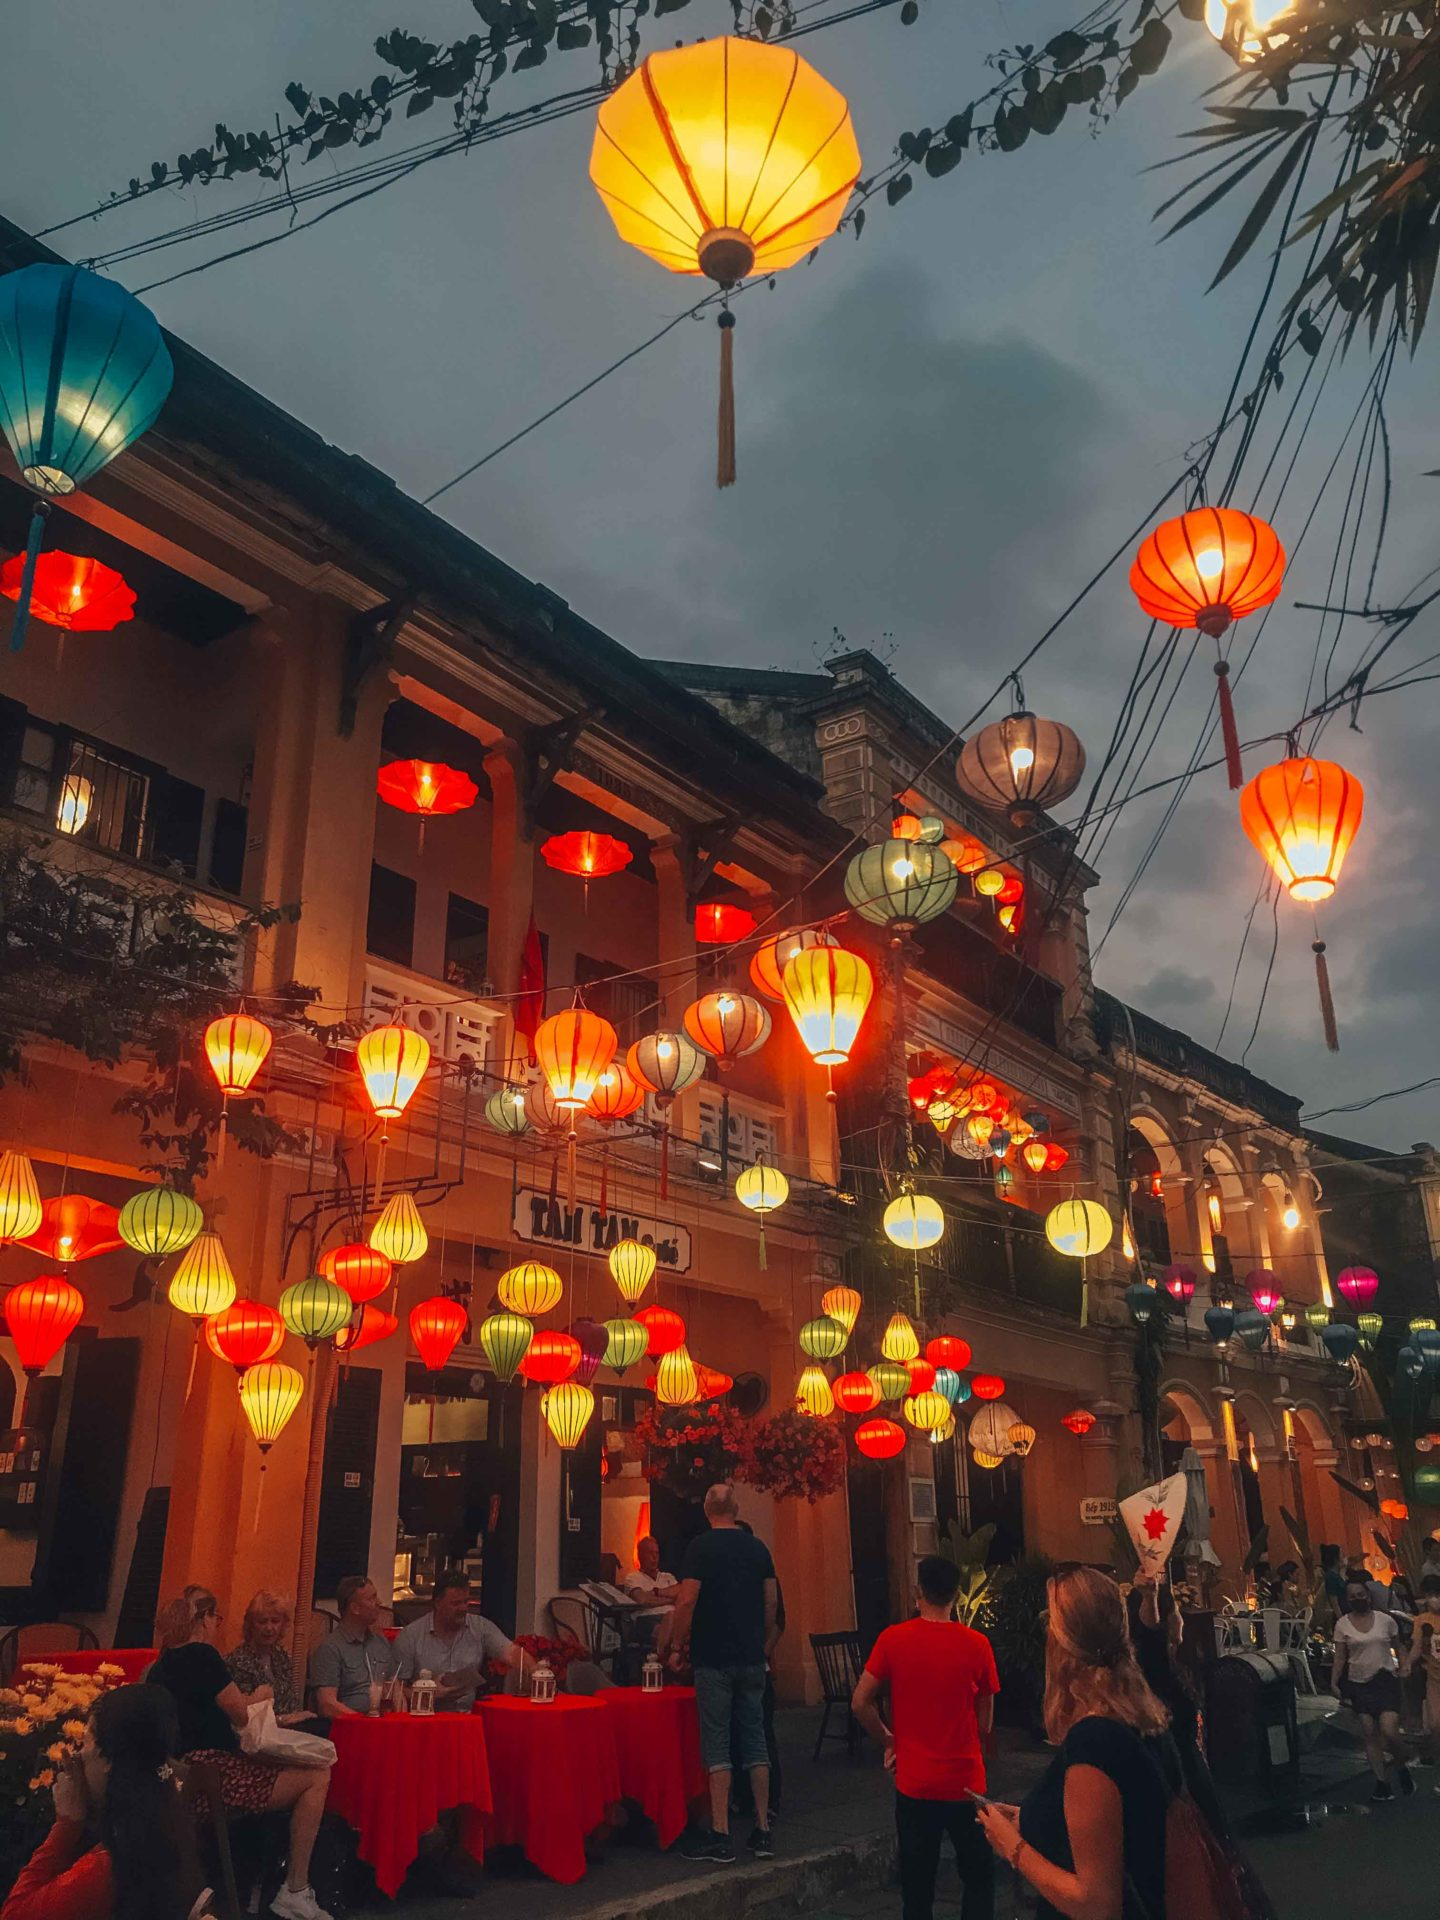 Night lanterns experience in Hoi An streets